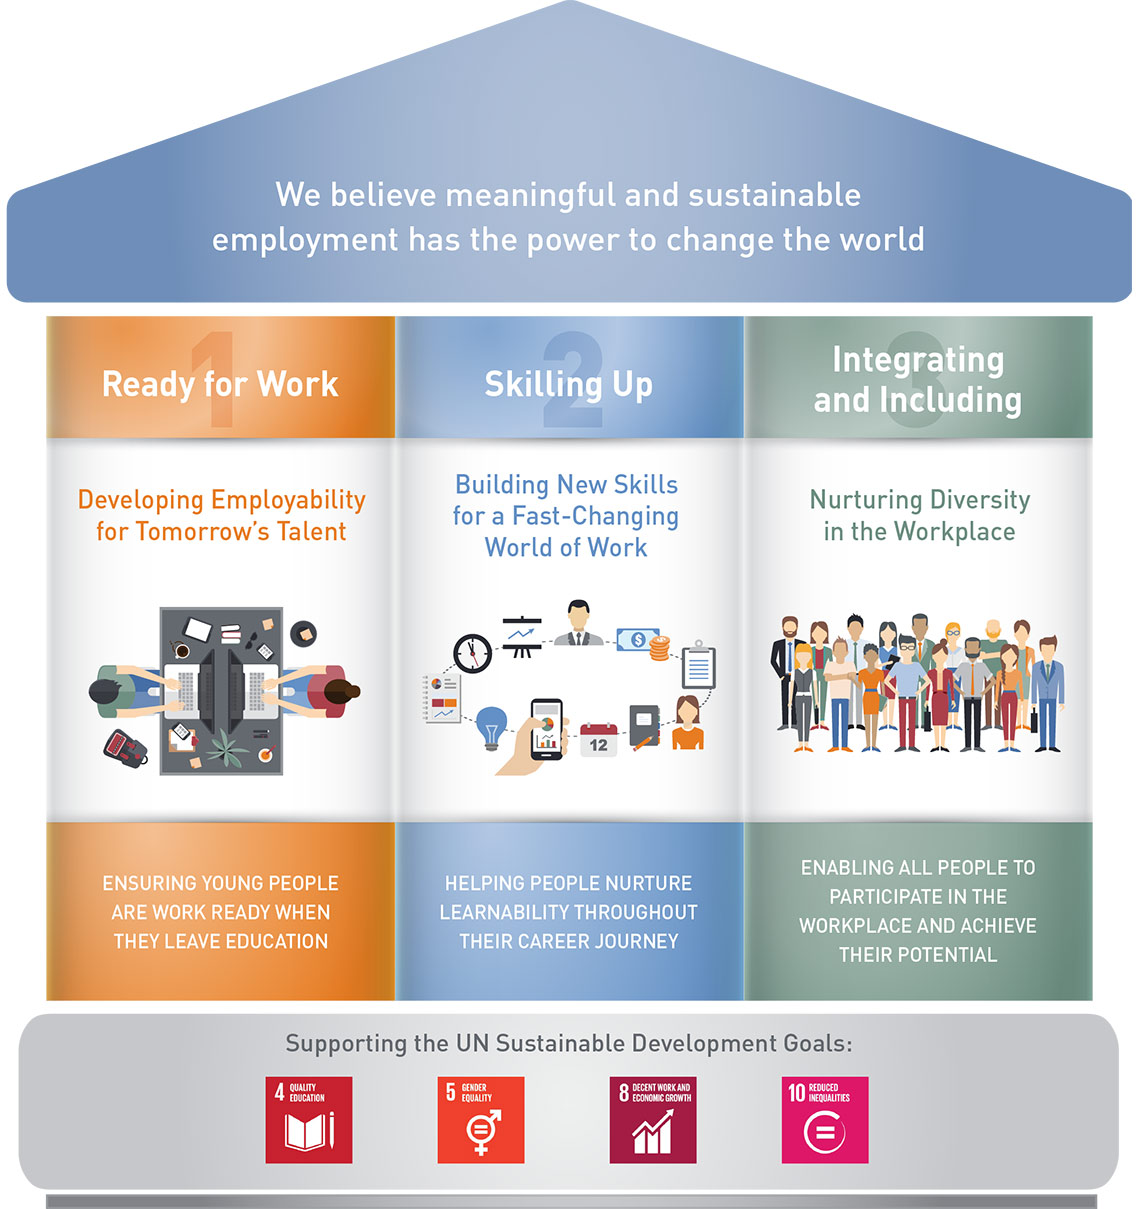 ManpowerGroup's Three Sustainable Development Goals